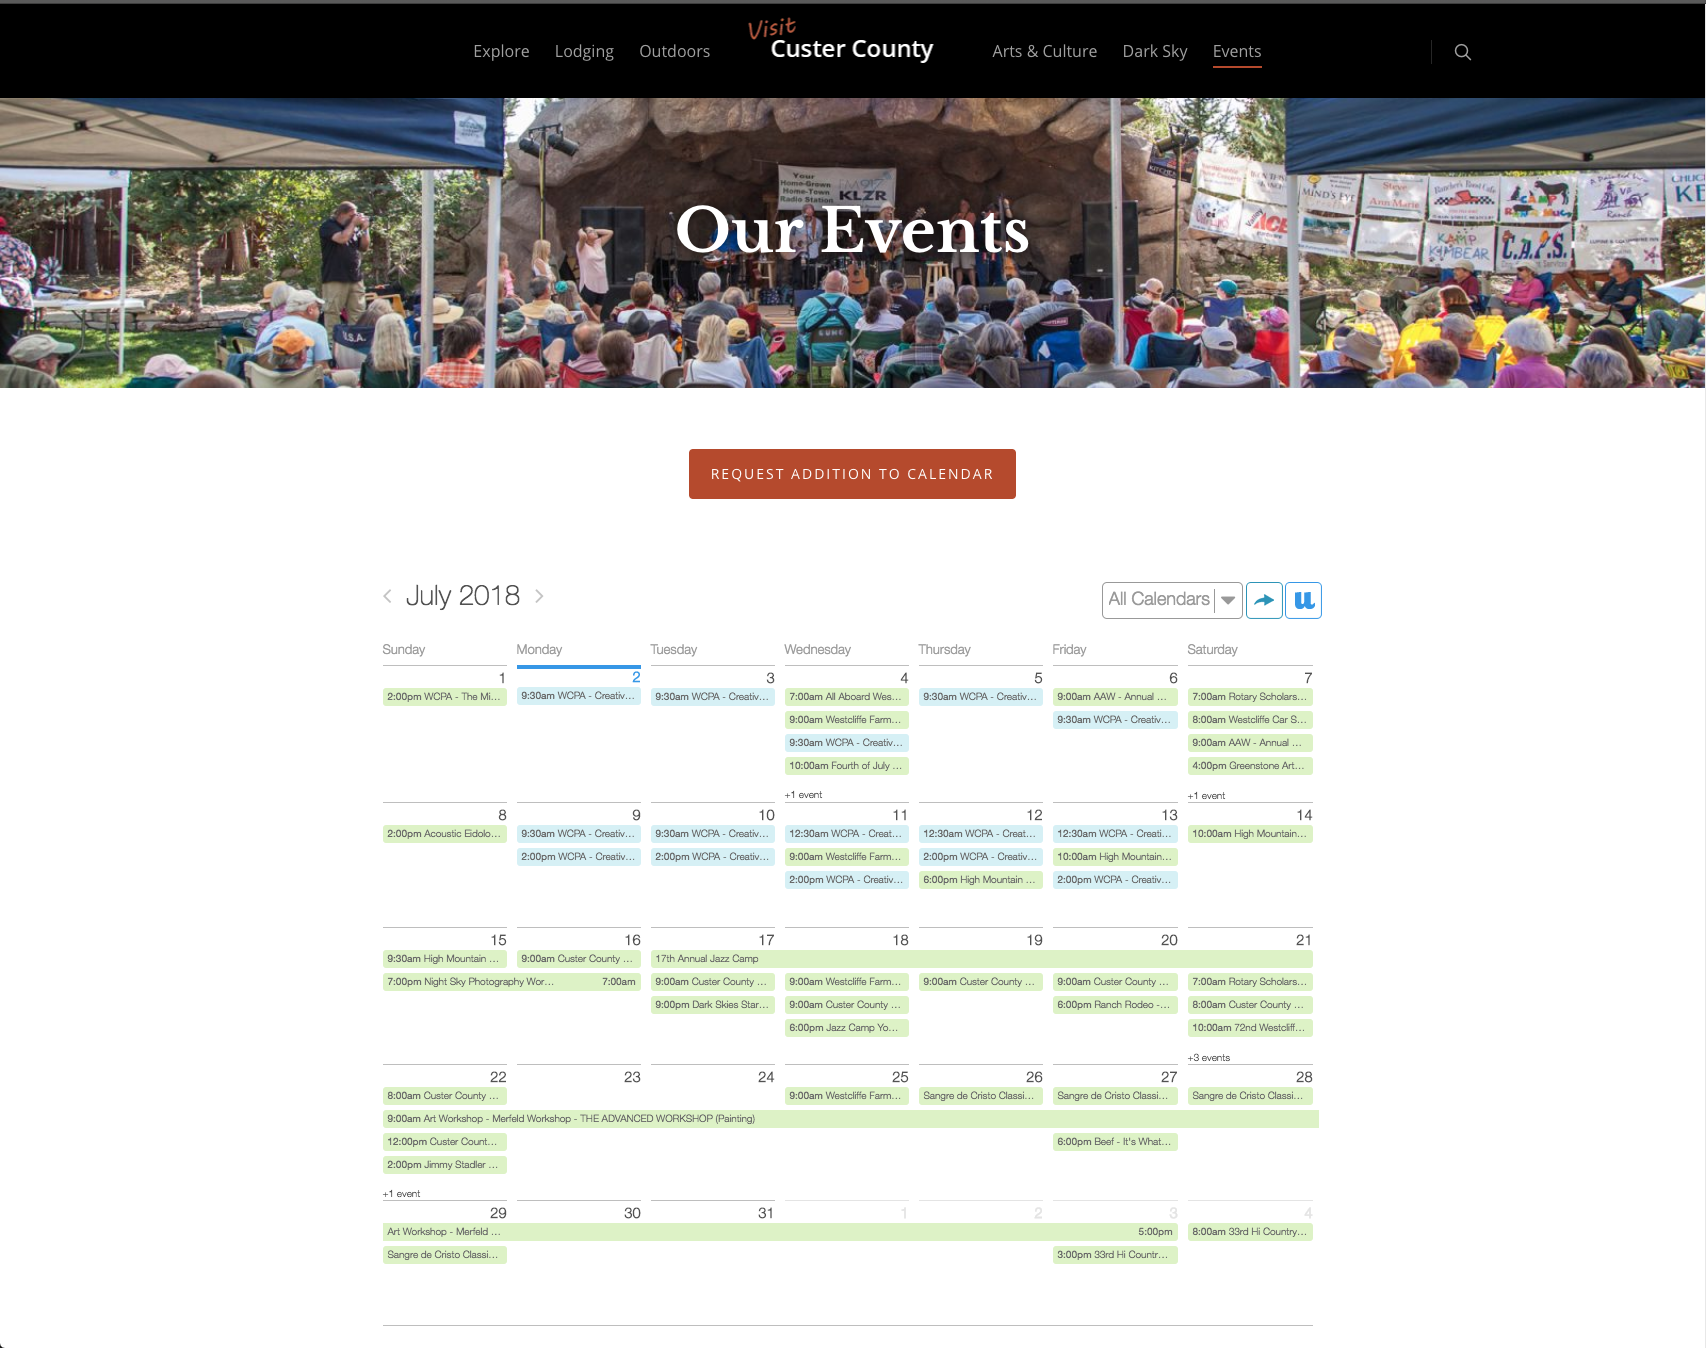 Events in Custer County